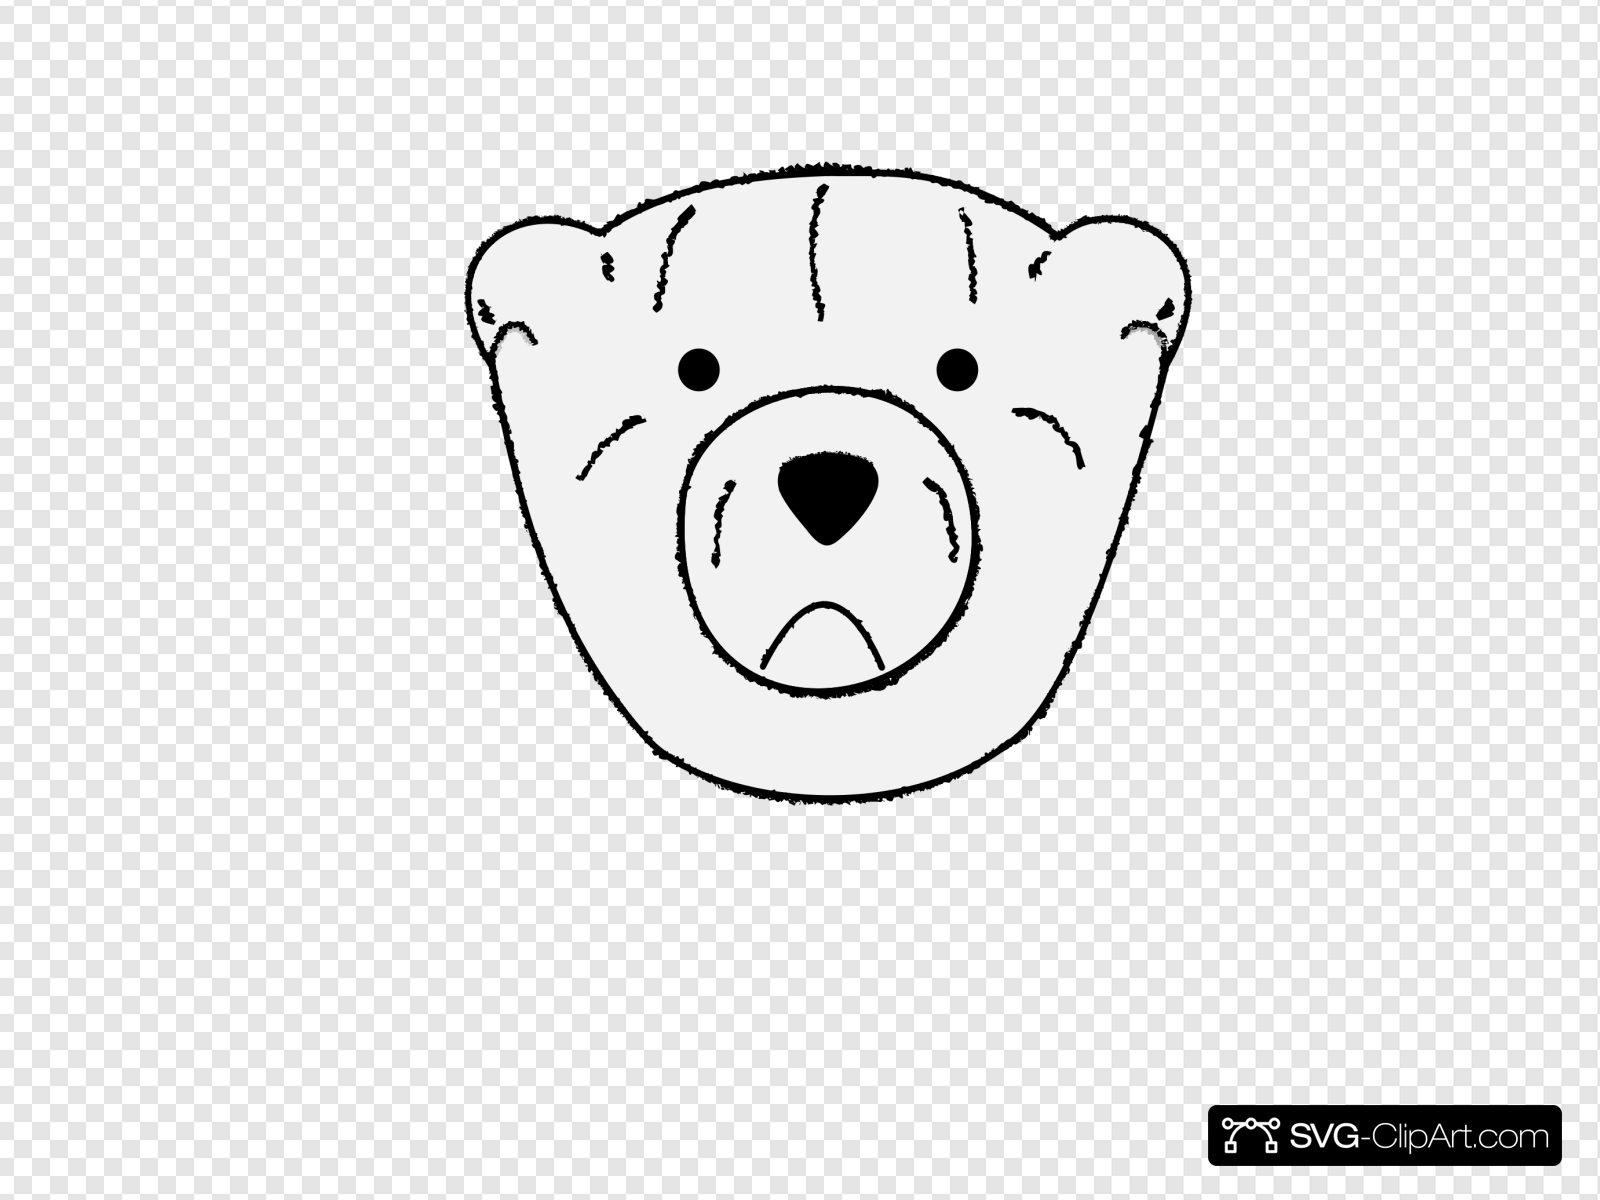 Bear Outline Clip art, Icon and SVG.